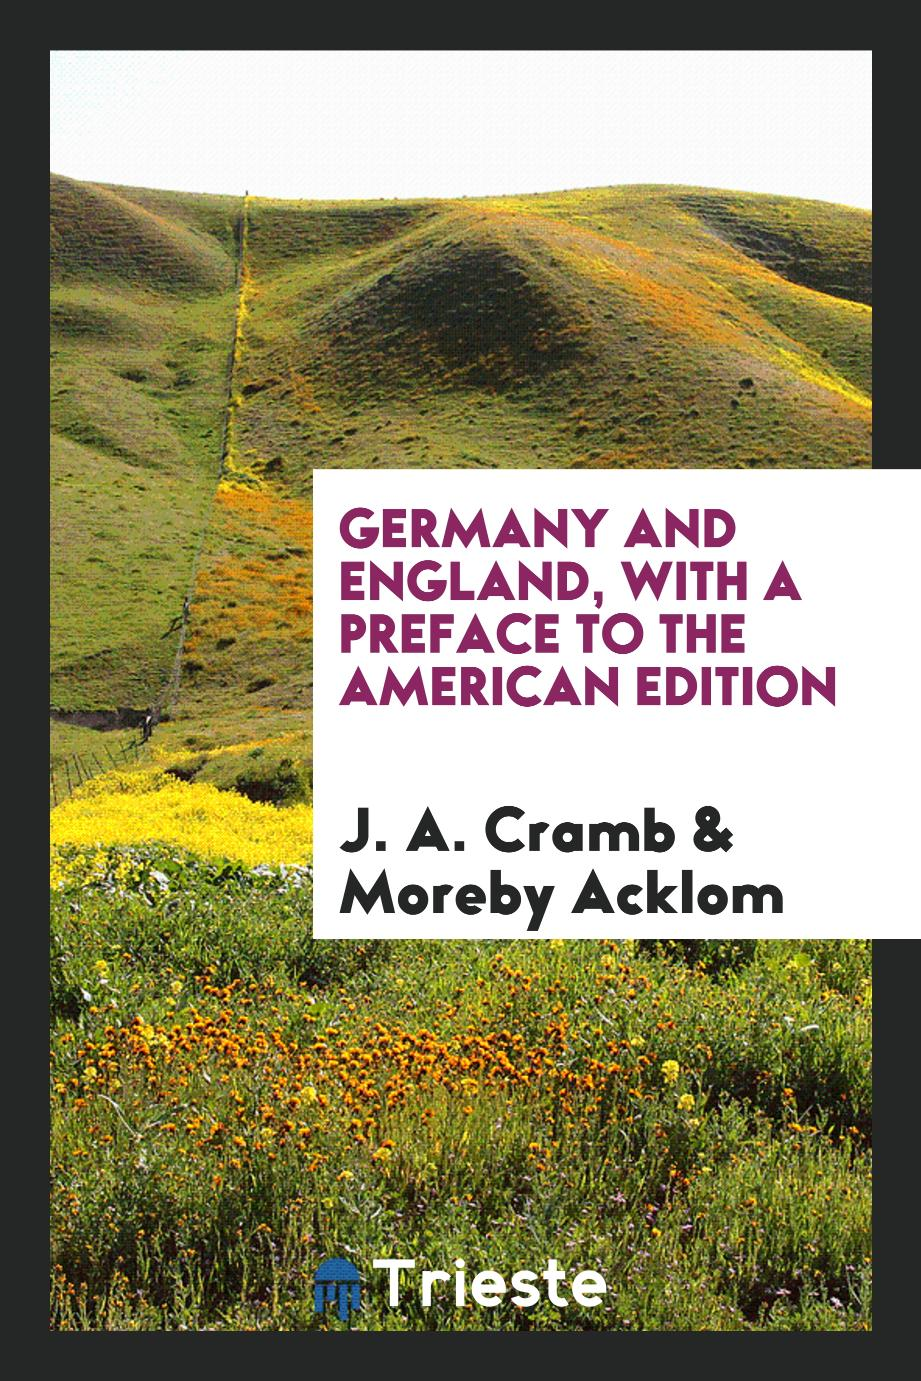 Germany and England, with a Preface to the American Edition